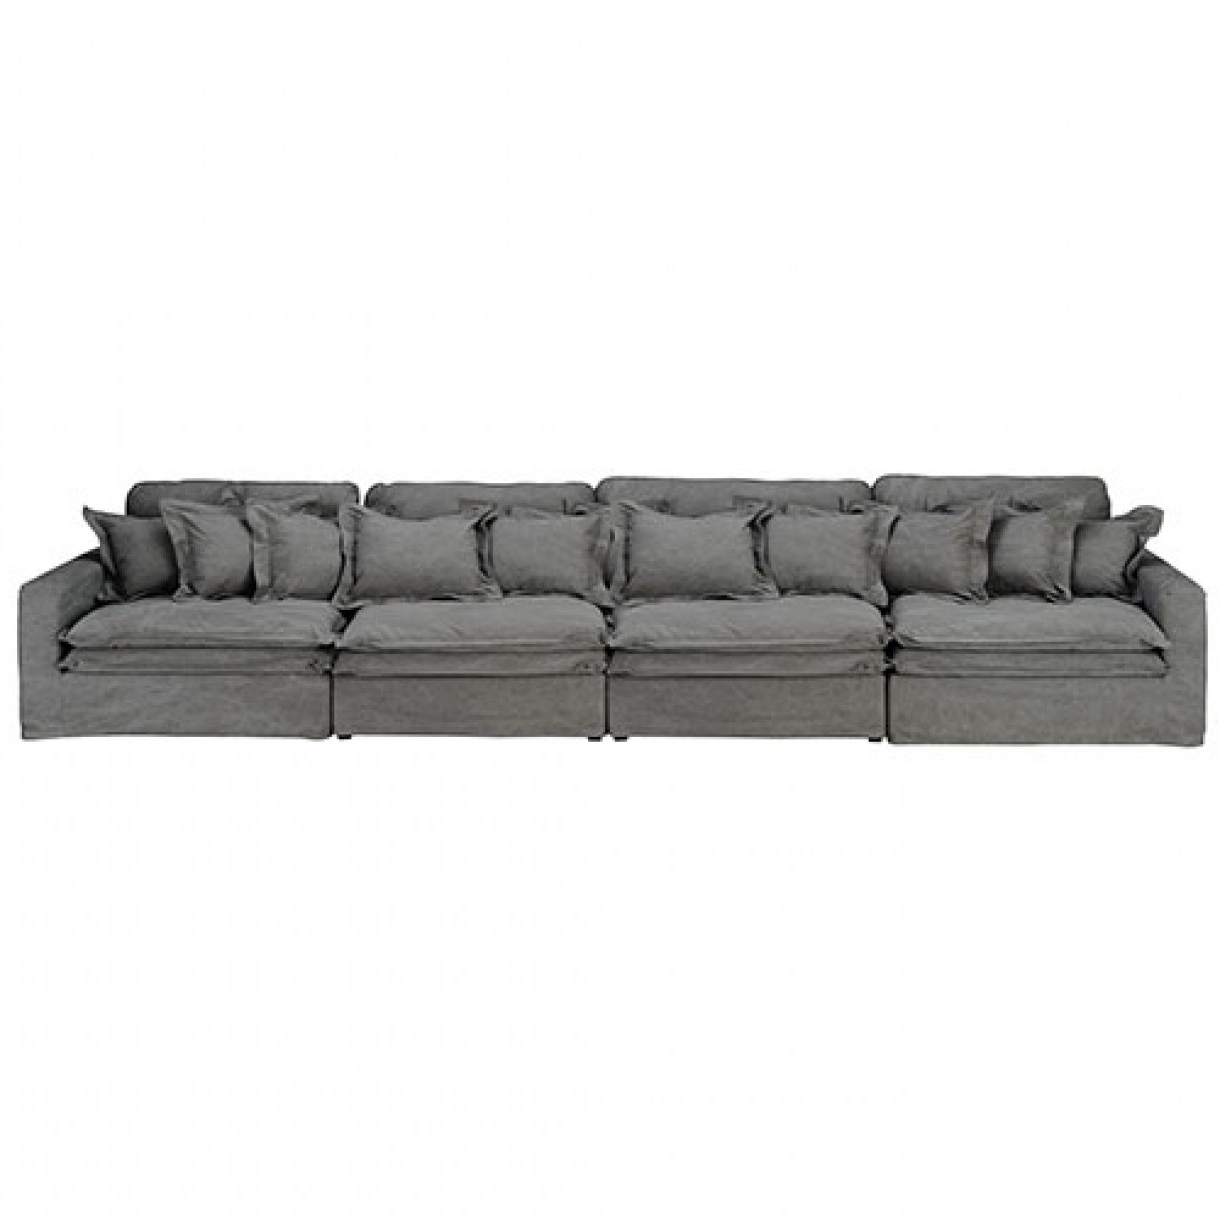 Four Seater Sofas Throughout Most Up To Date 4 Seater Sofa Vintage Grey Cotton (View 8 of 20)